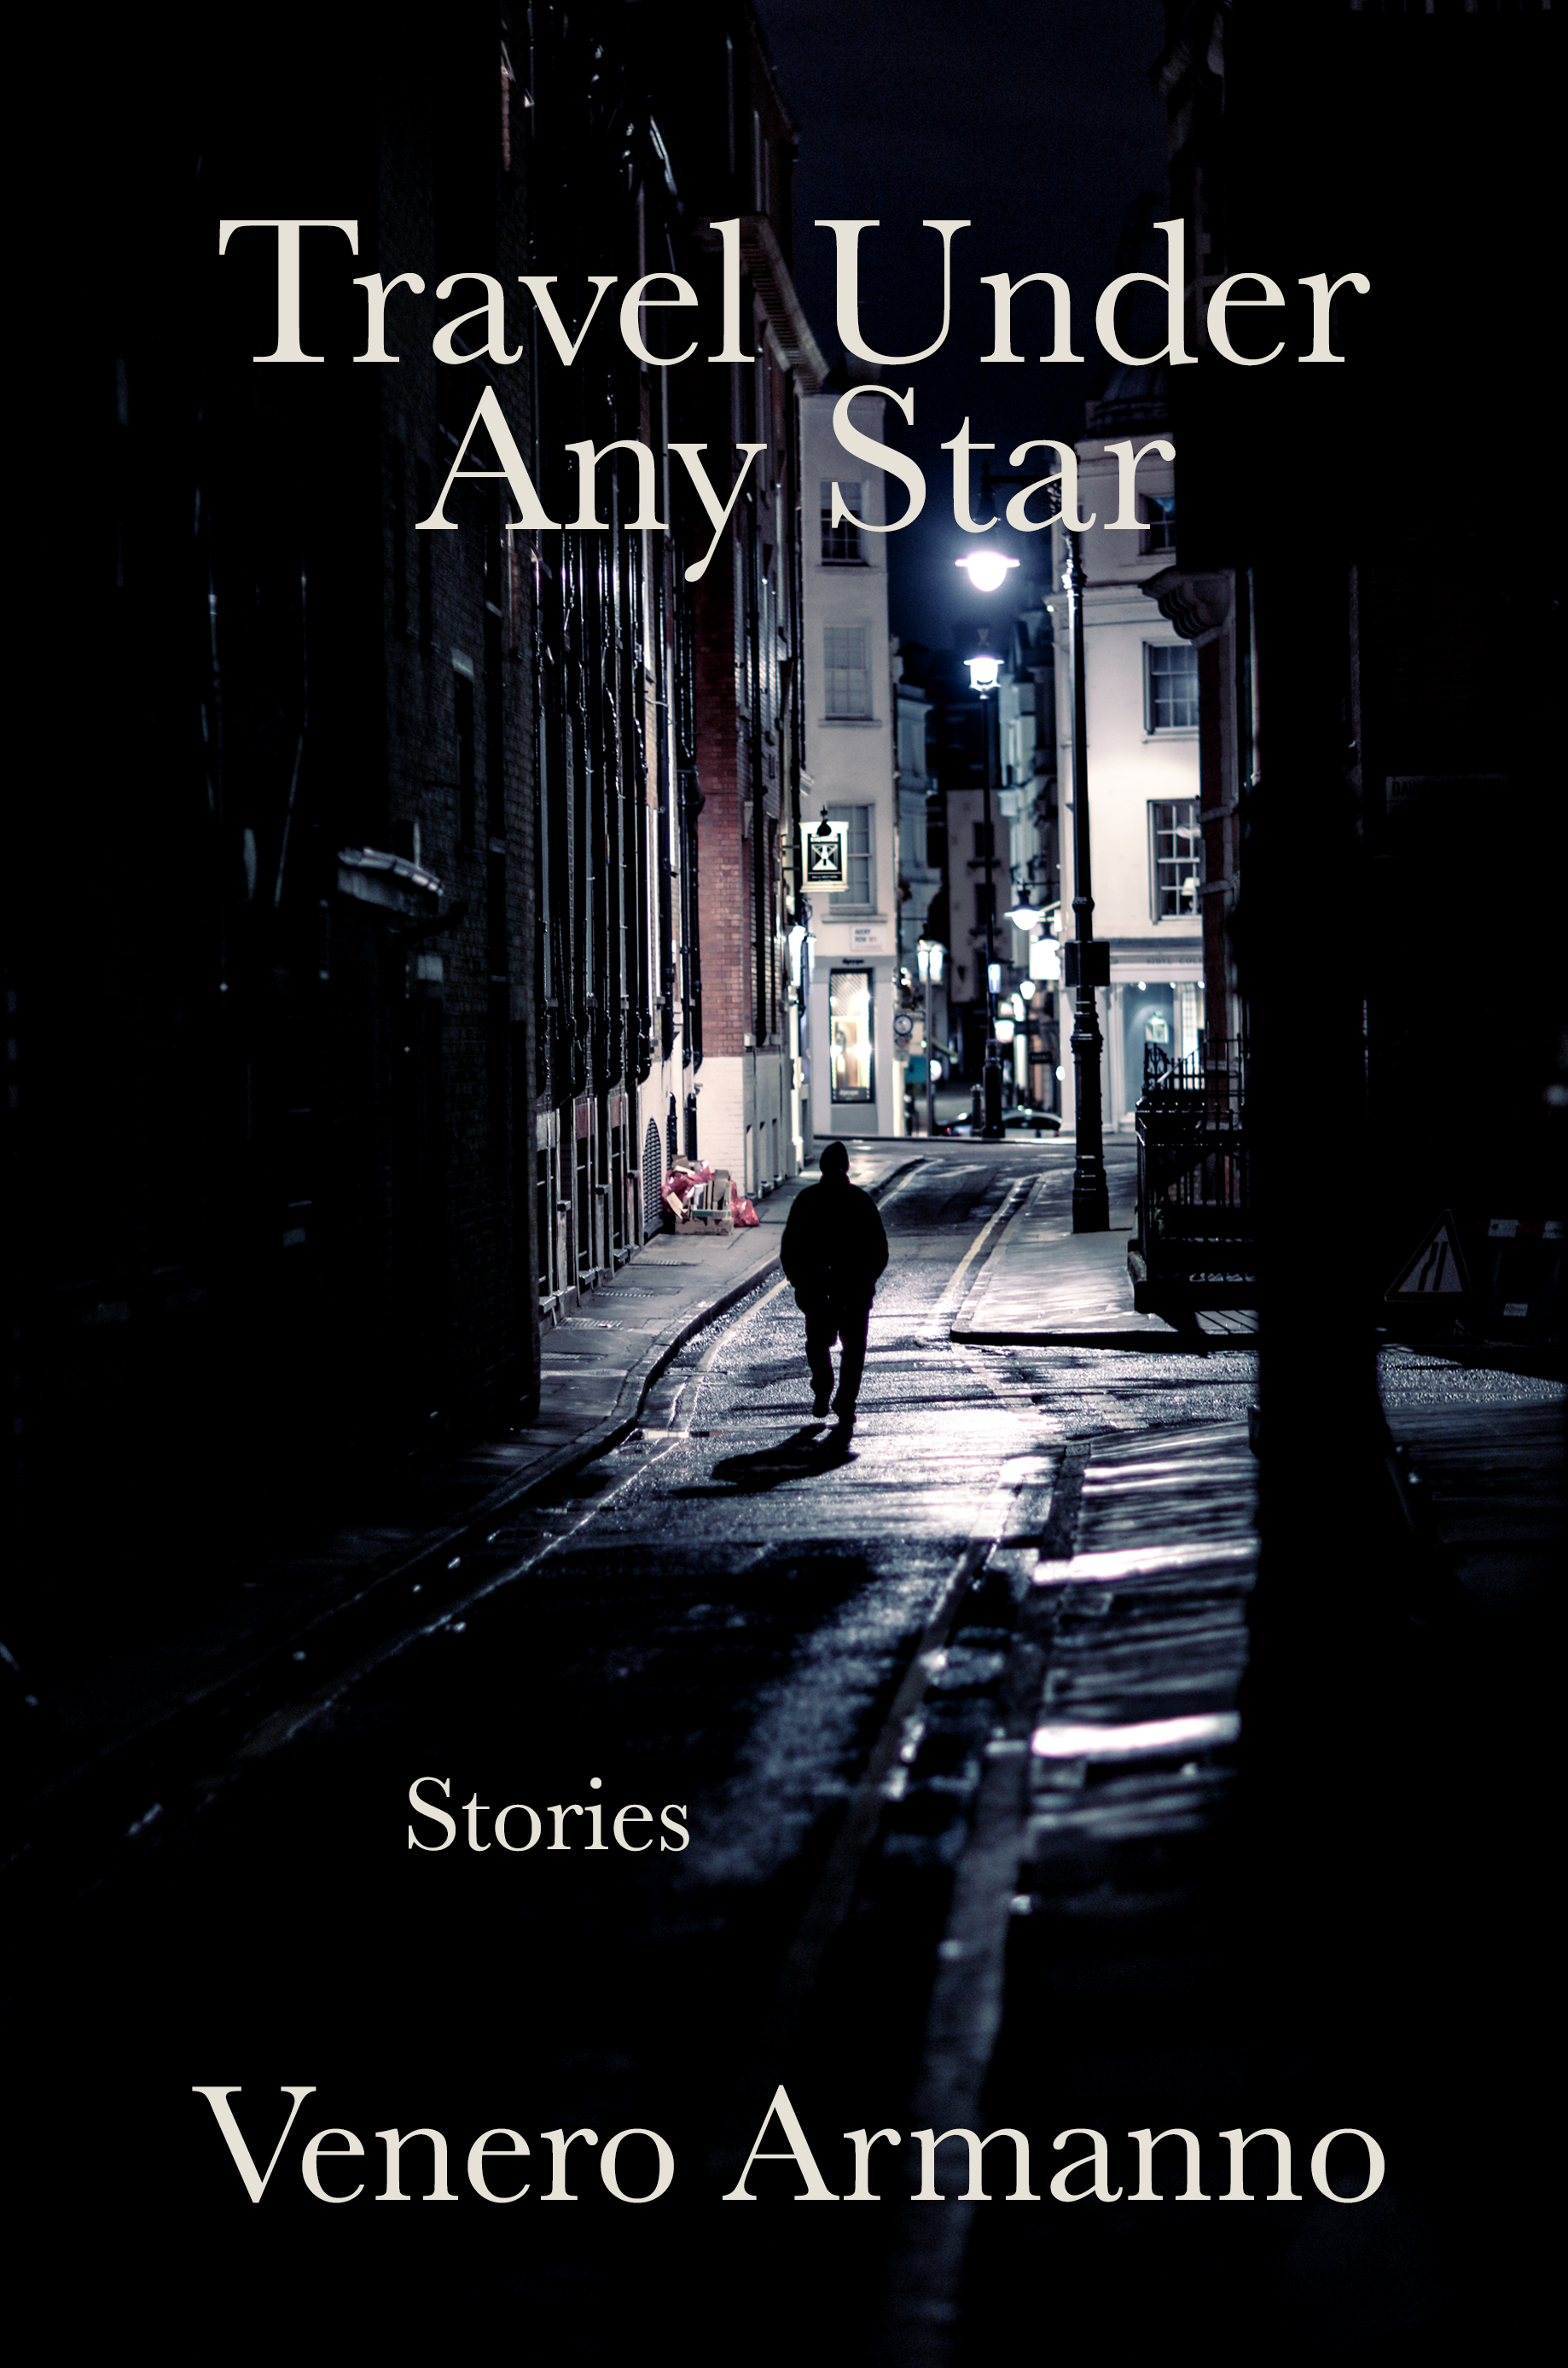 travel-under-any-star-venero-armanno-bkbooks